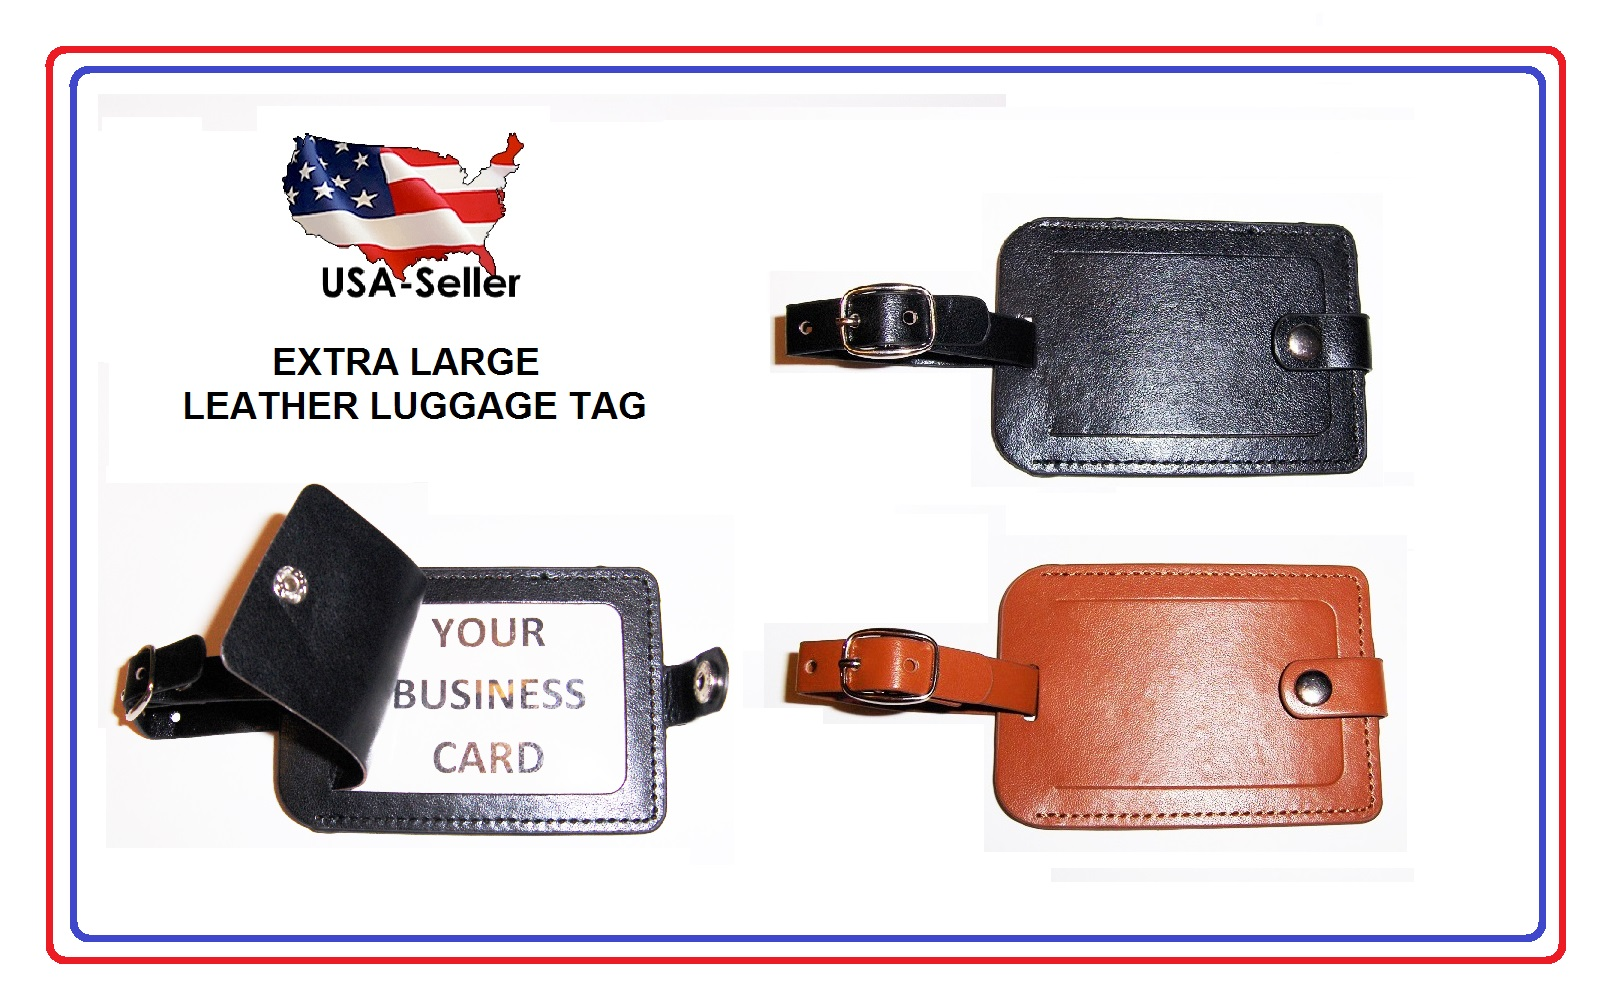 7886819bc65c Details about LUGGAGE TAG - LEATHER - STICHED - NICE! EXCELLENT QUALITY